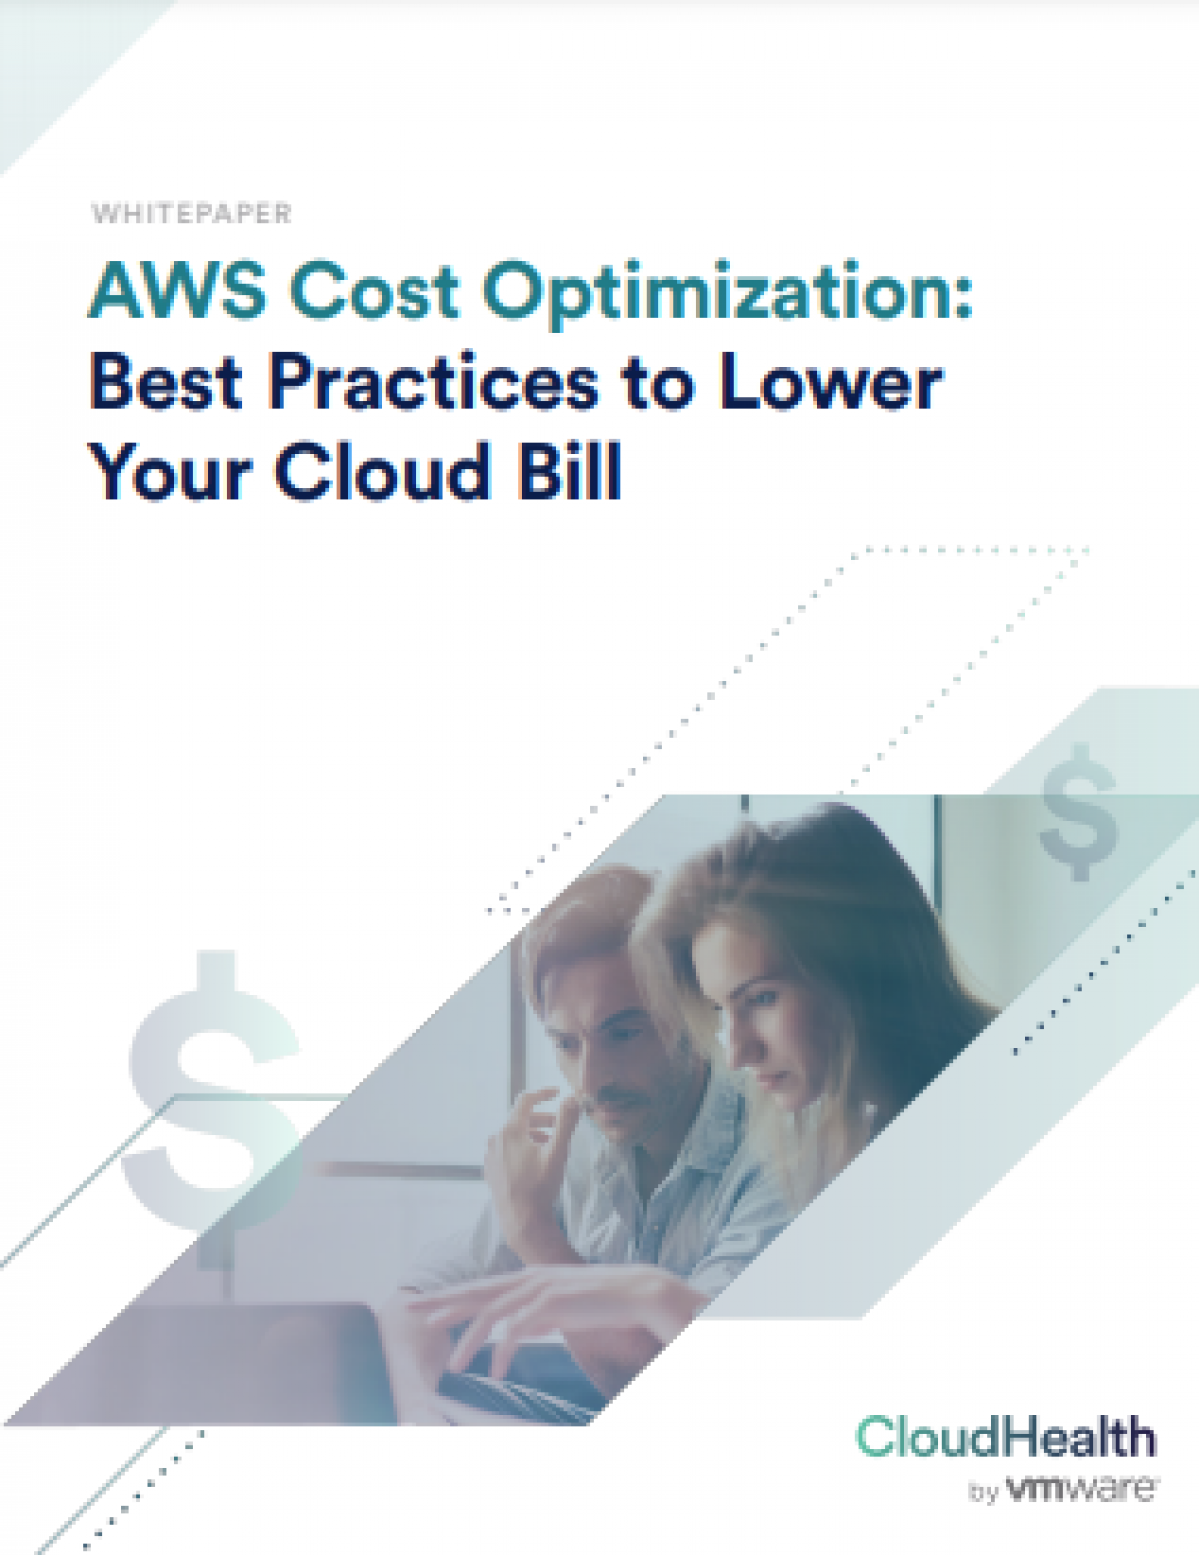 AWS Cost Optimization: Best Practices to Lower Your Cloud Bill